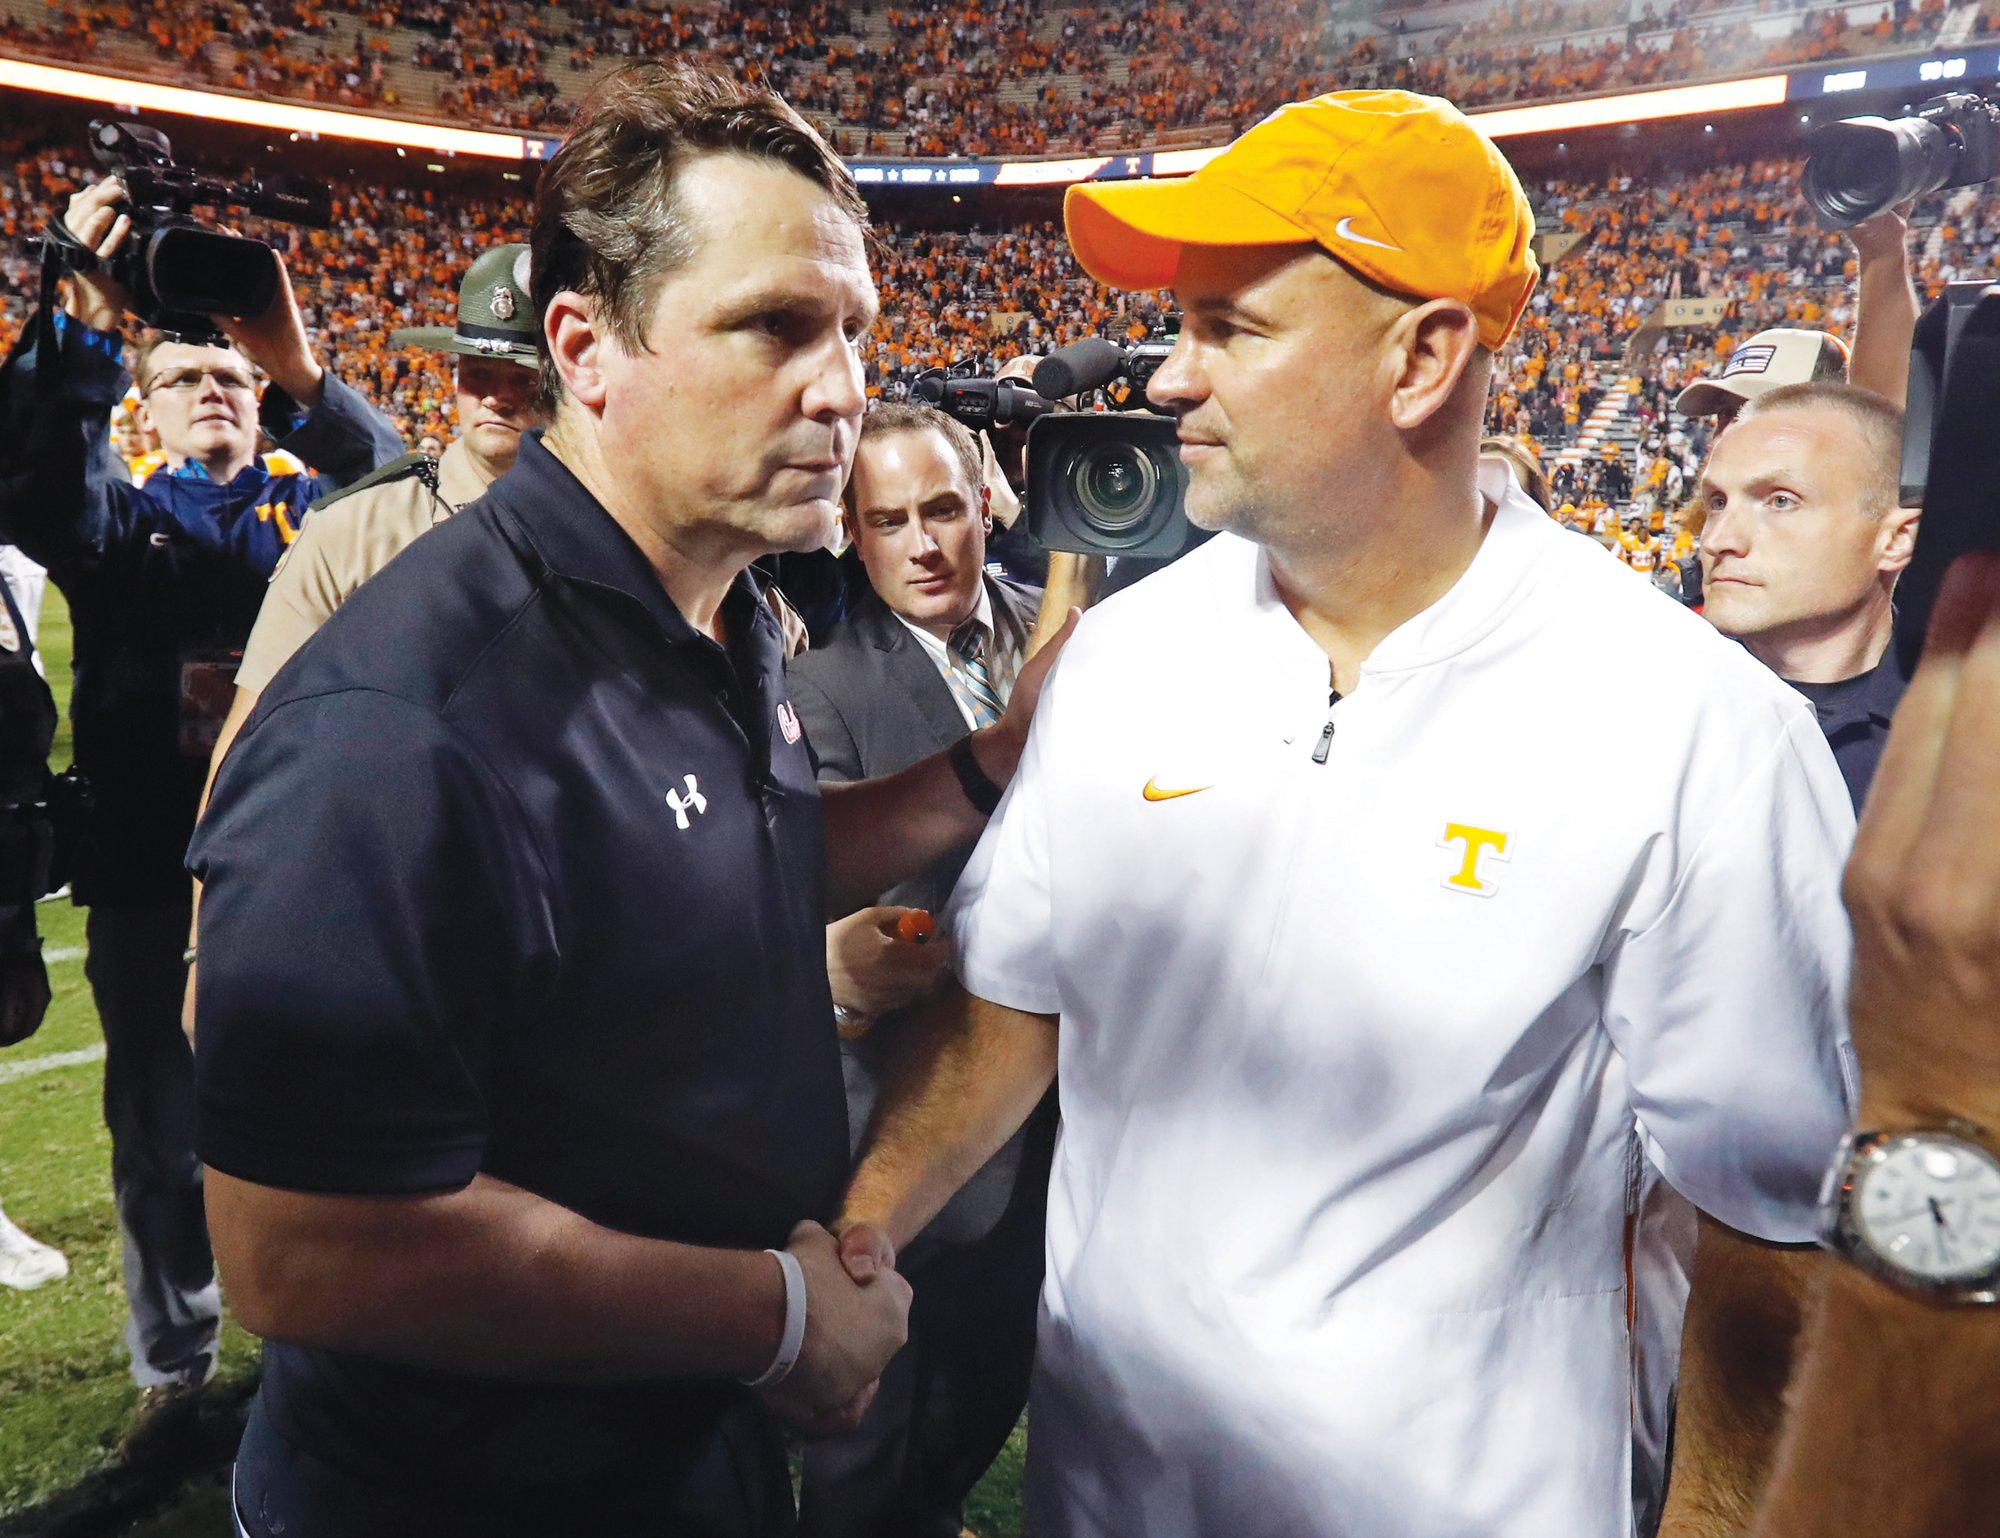 THE ASSOCIATED PRESSTennessee head  coach Jeremy Pruitt  shakes hands with  South Carolina head  coach Will Muschamp  after the Volunteers' 41-21 victory in Knoxville, Tennessee, last month. Both teams are trying to become bowl-eligible.